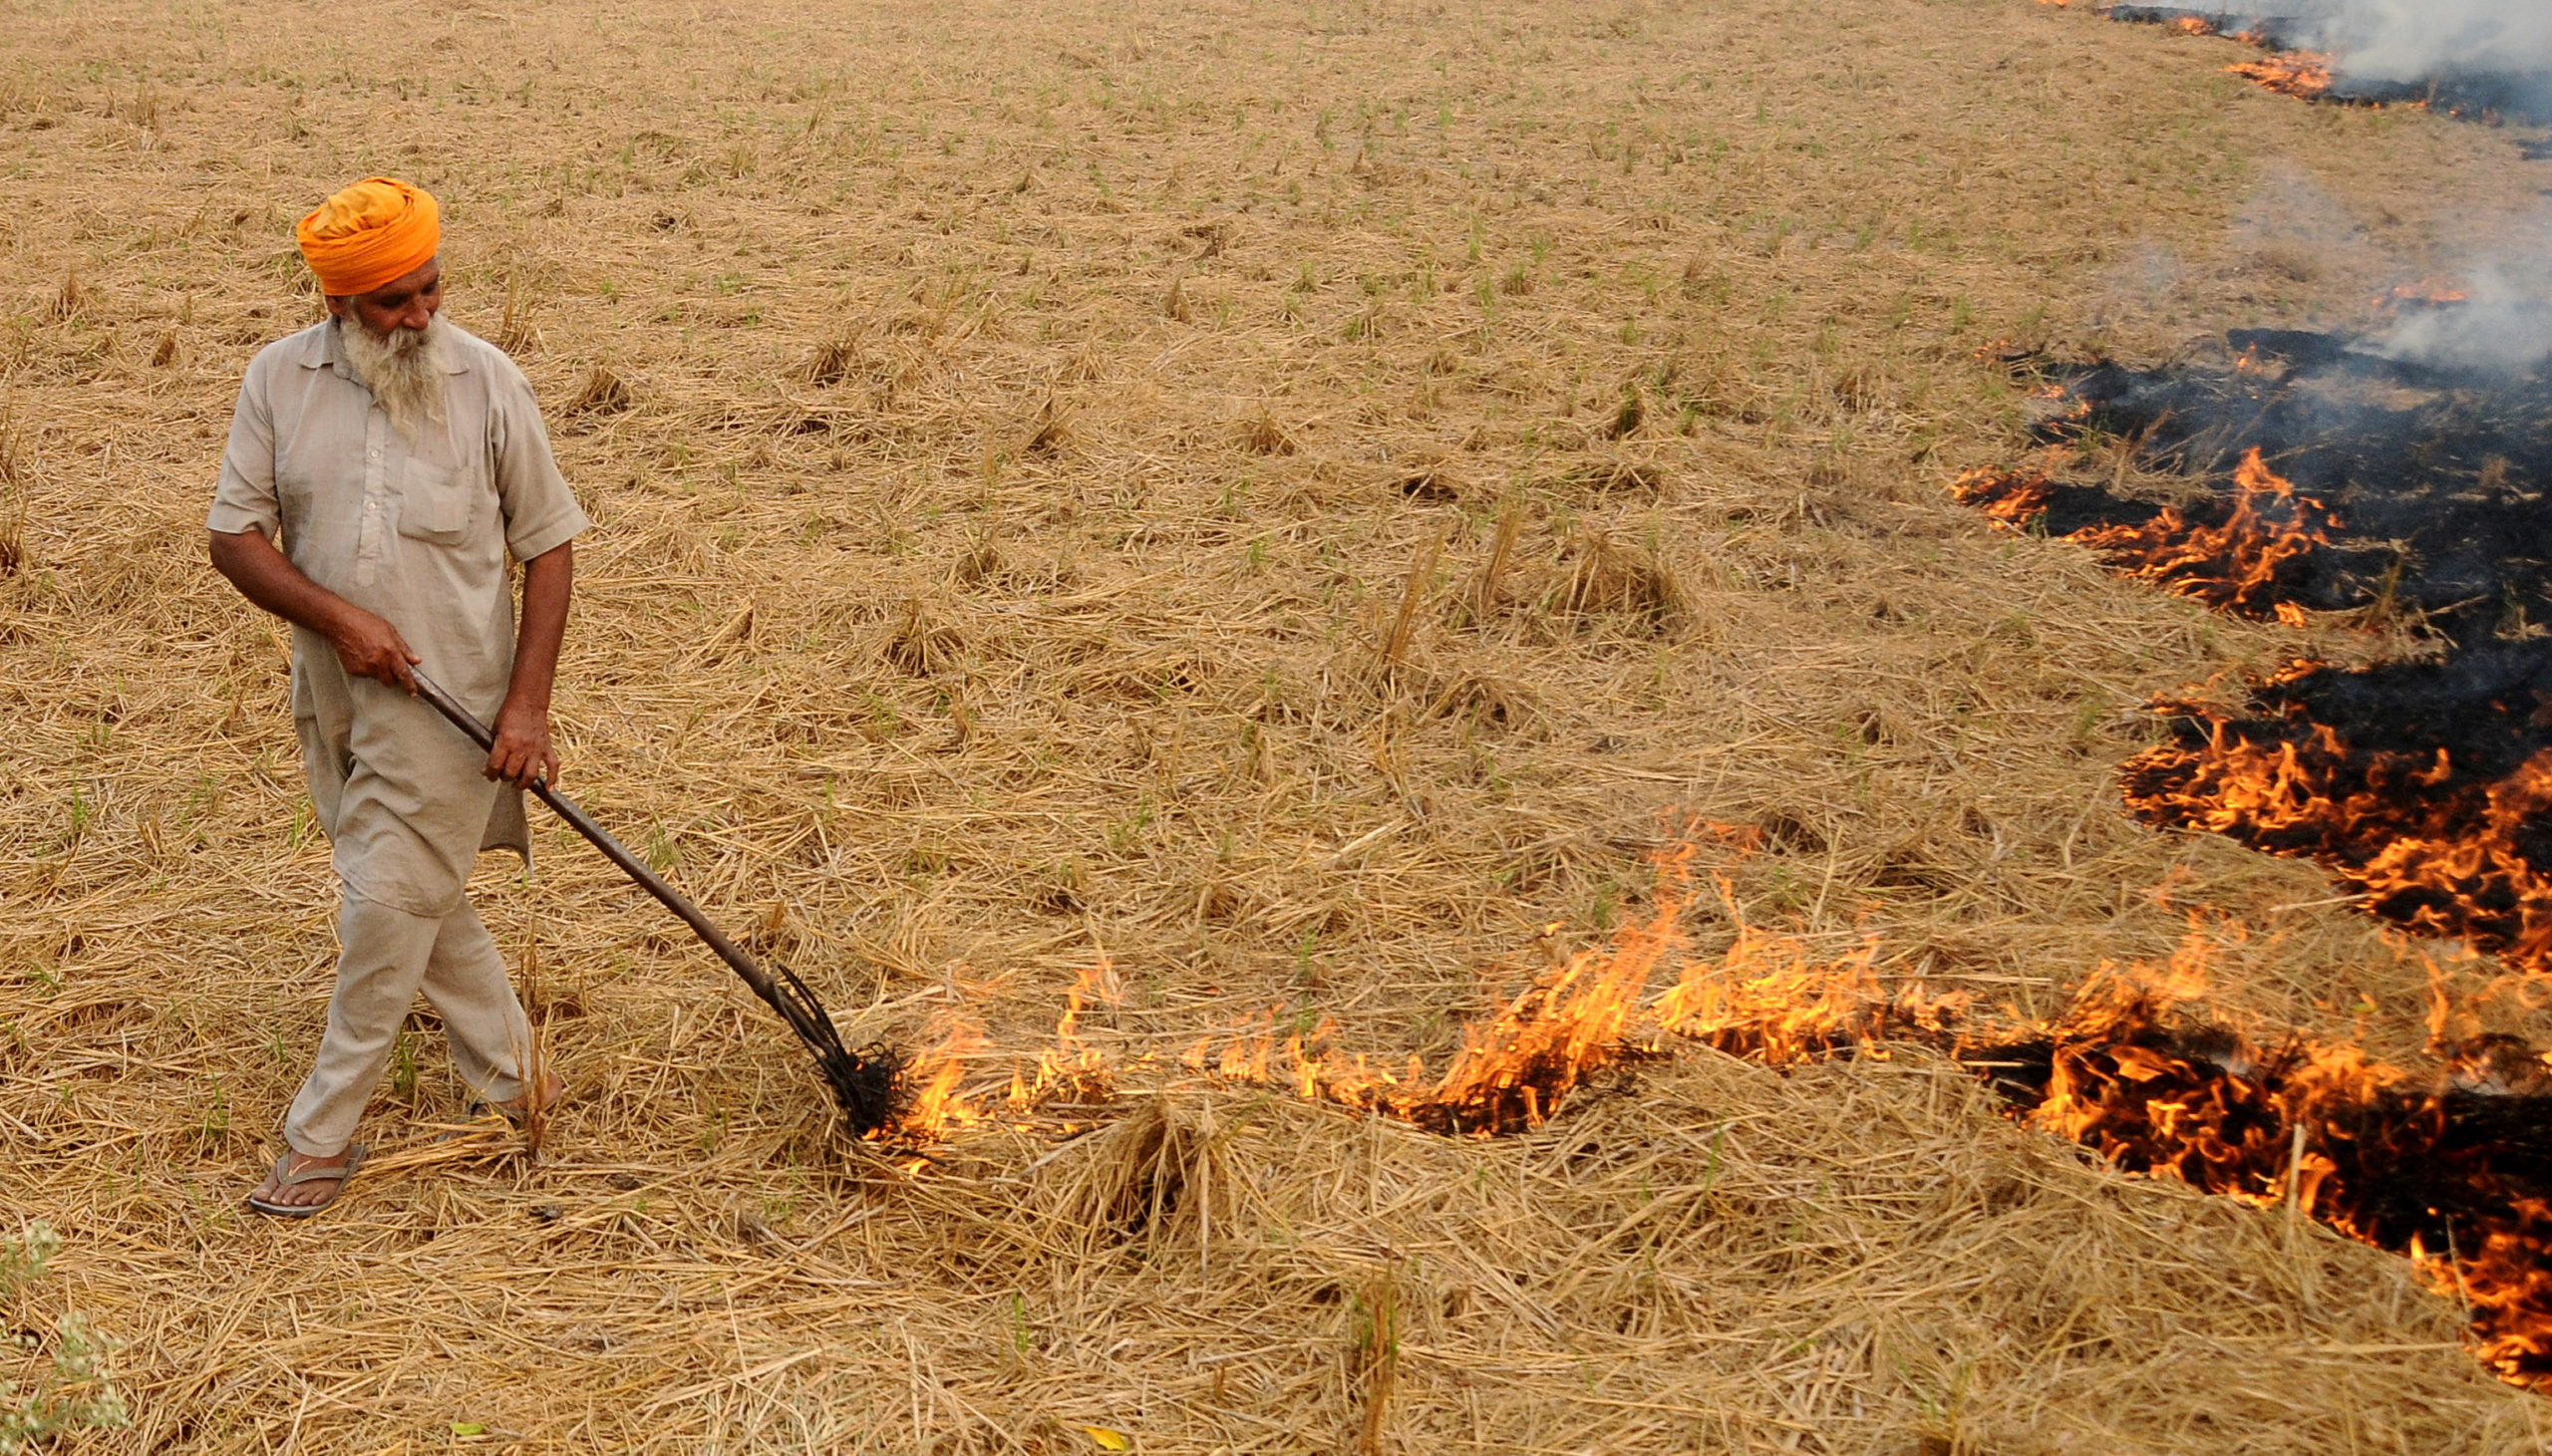 Farmer Burning Paddy Stubble at sanour village near patiala. Photo by special arrangement.